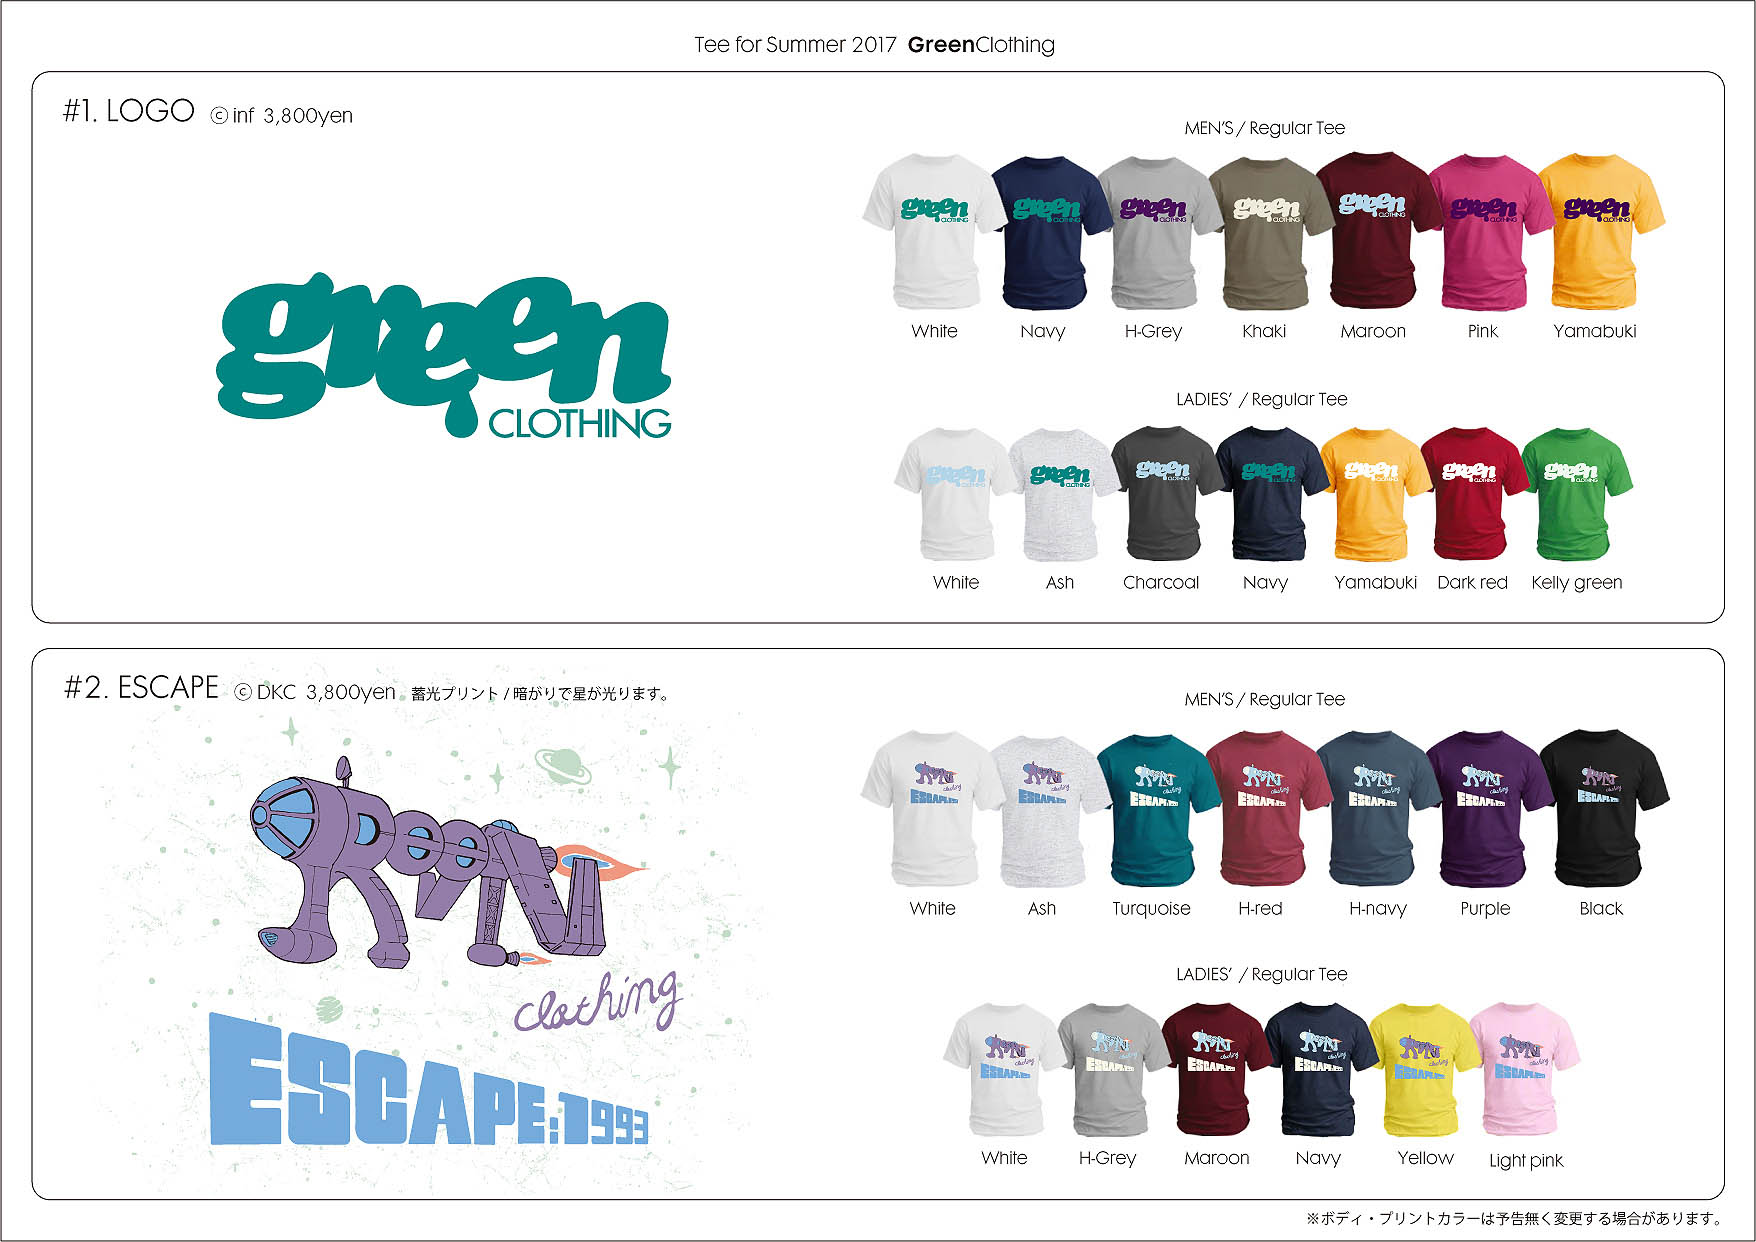 GREENCLOTHING 2017summer Tシャツ予約開始